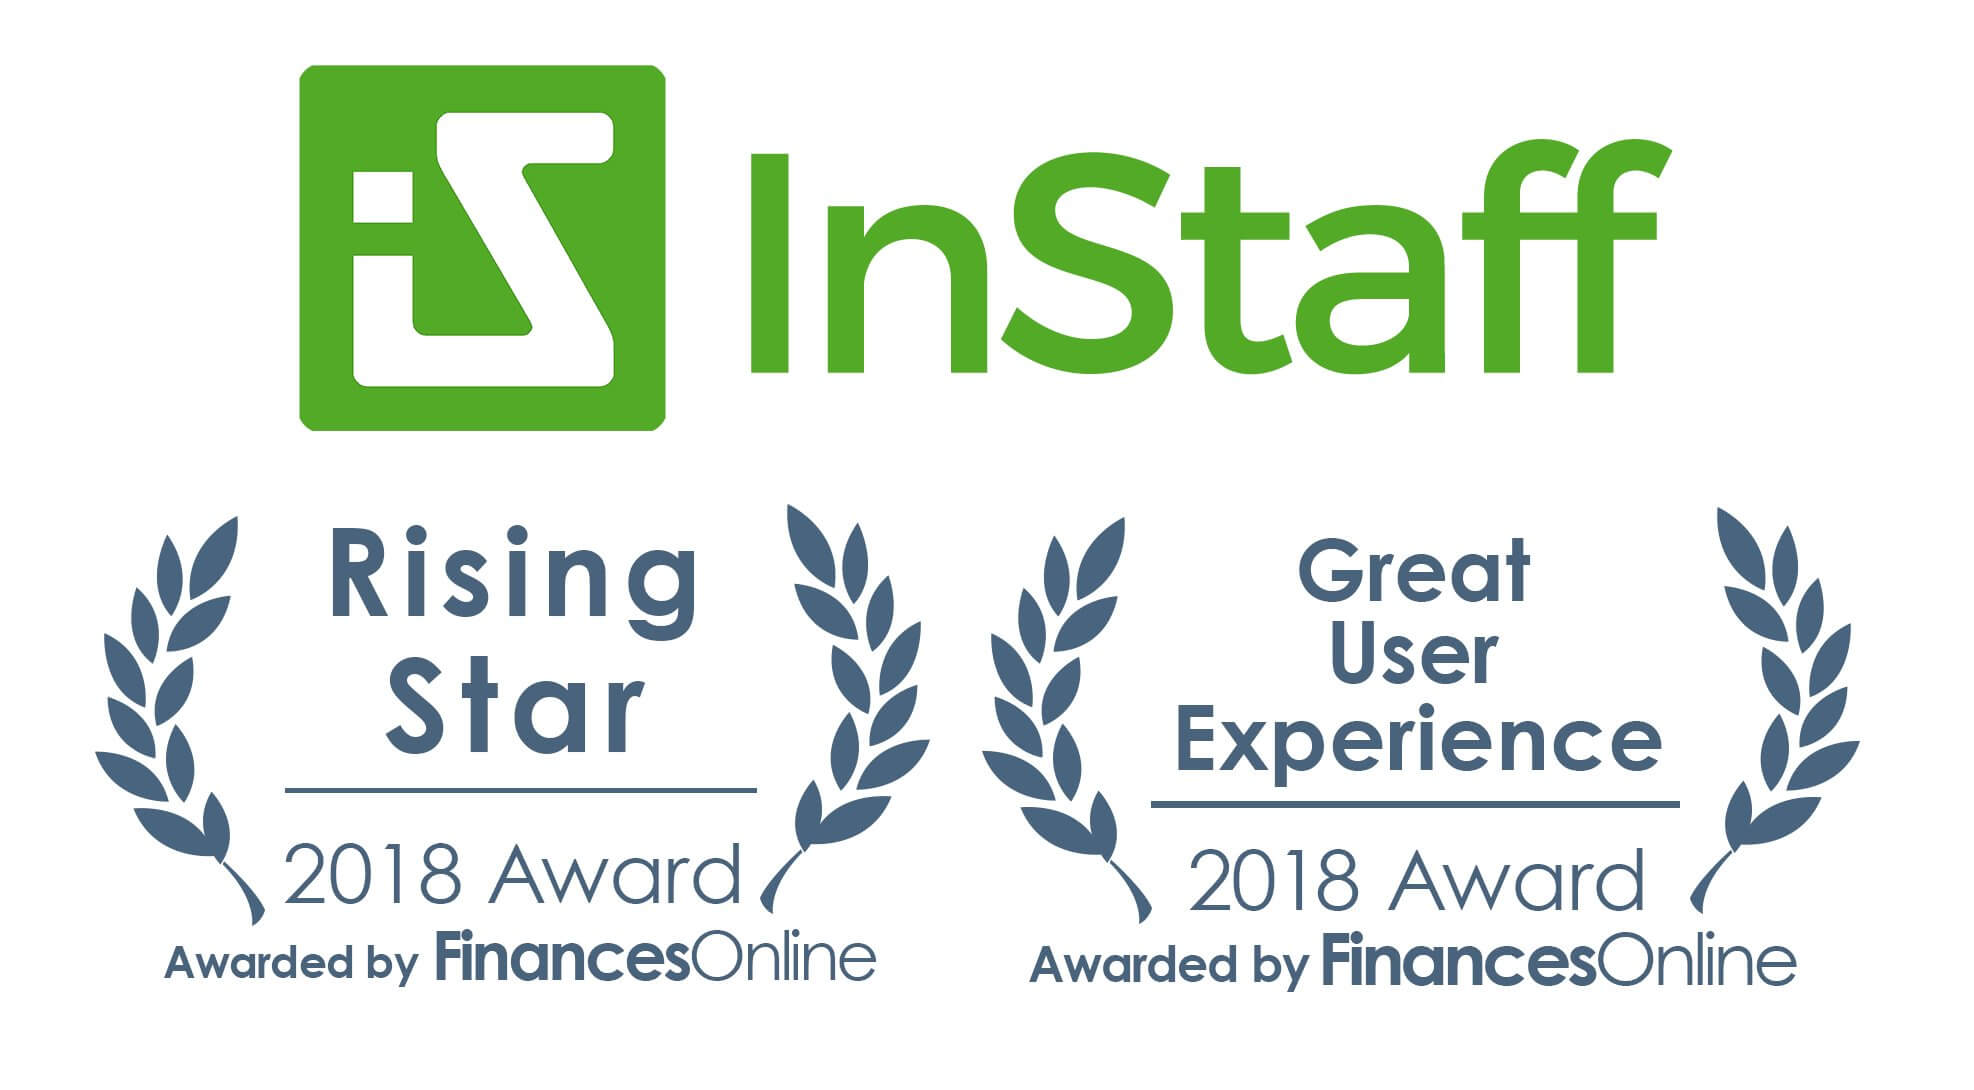 InStaff receives Rising Star and Great User Experience awards from FinancesOnline